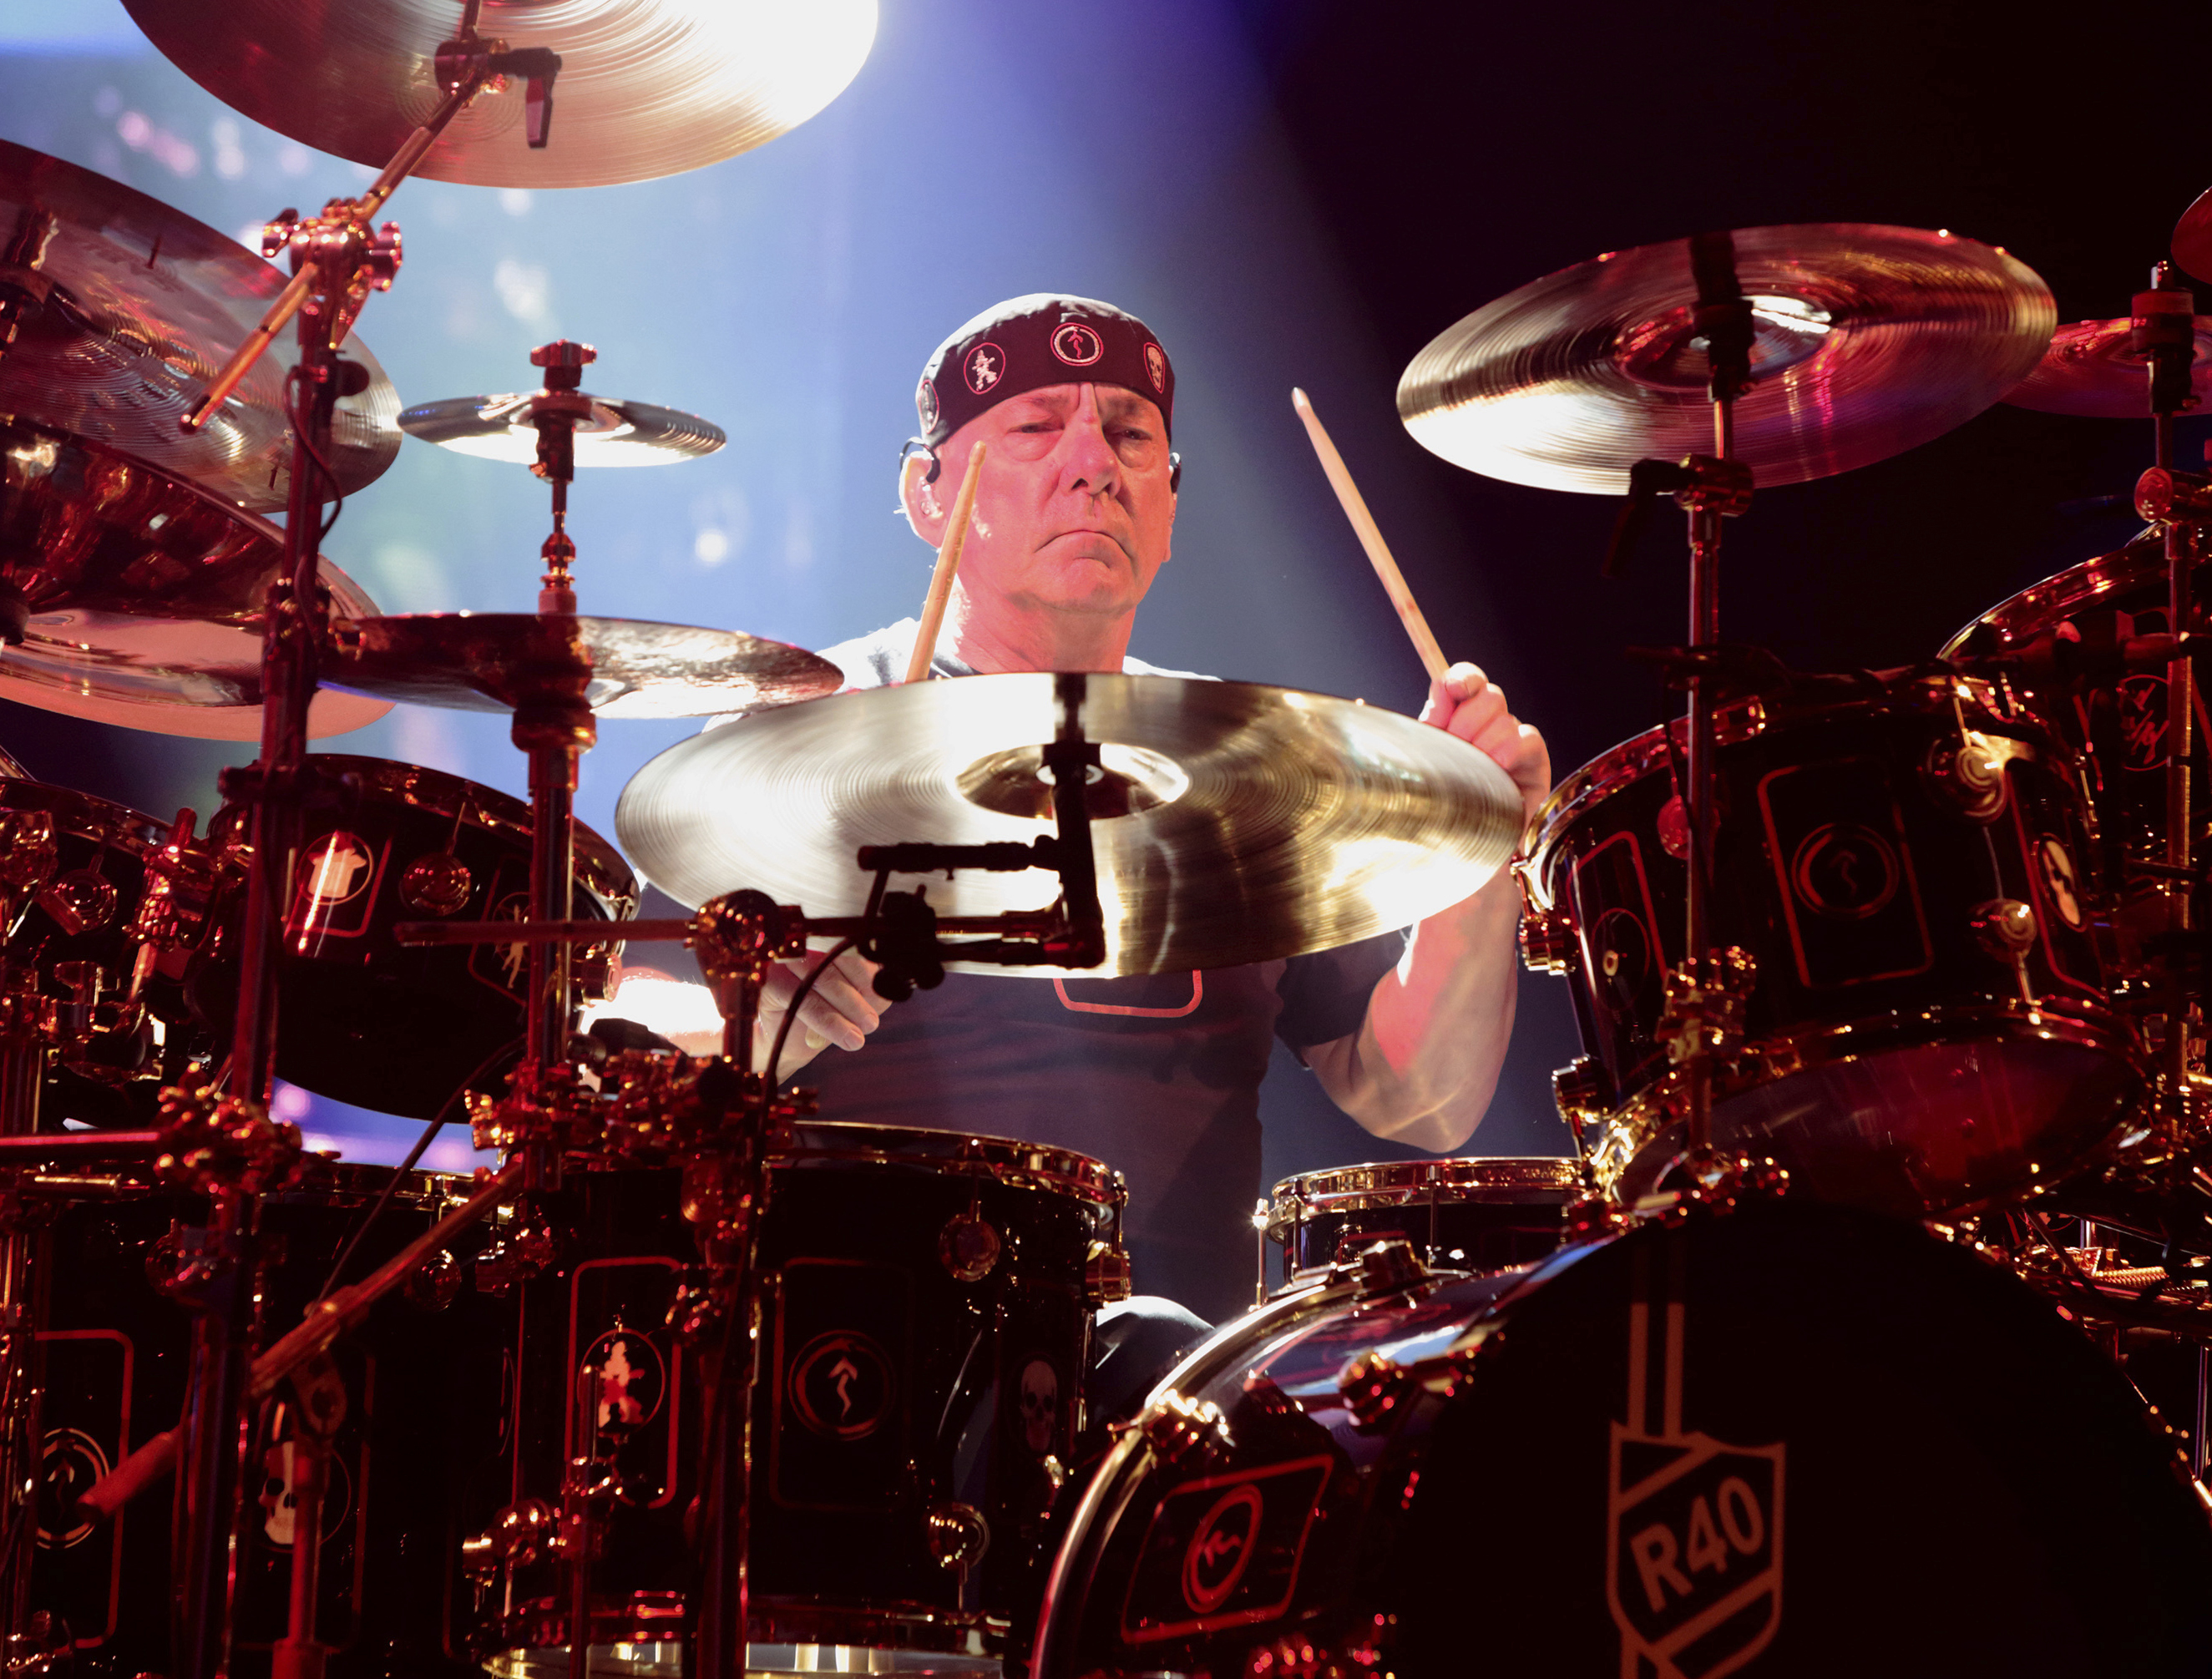 This 2015 file photo shows Neil Peart of the band Rush performing in concert during their R40 Live: 40th Anniversary Tour in Philadelphia.